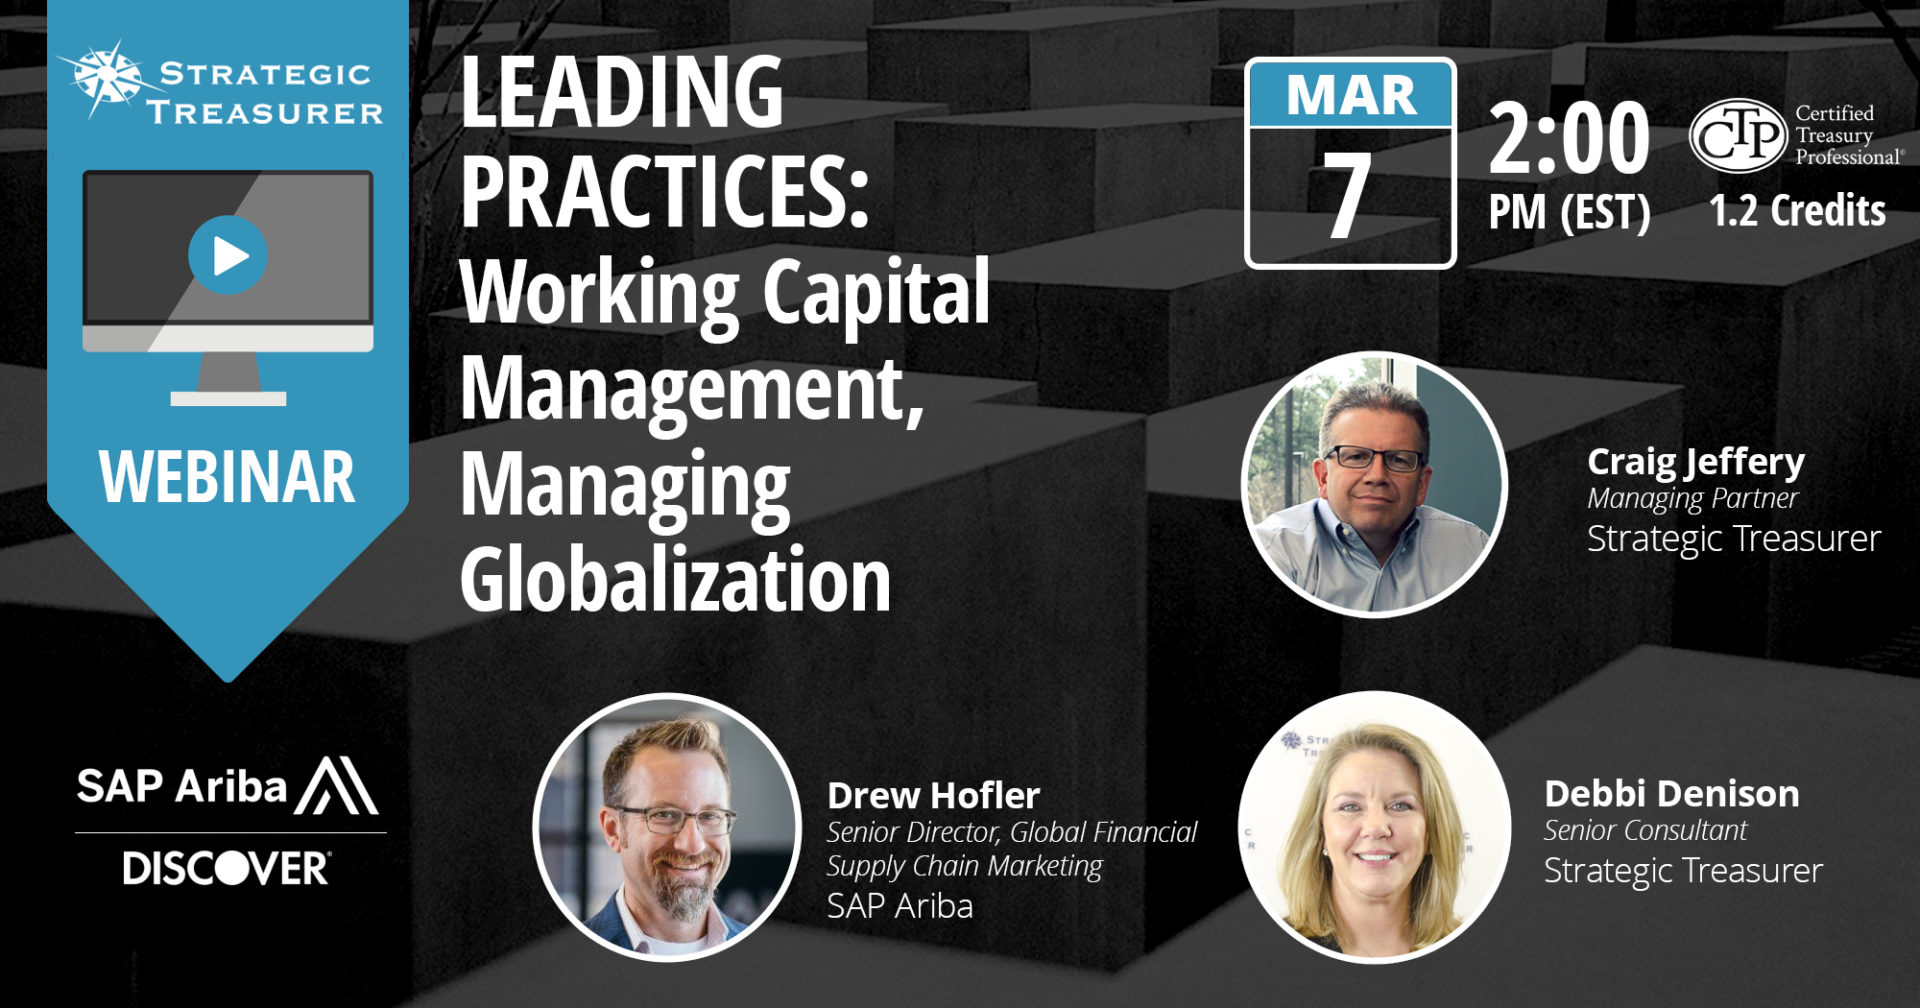 Leading Practices: Working Capital Management, Managing Globalization